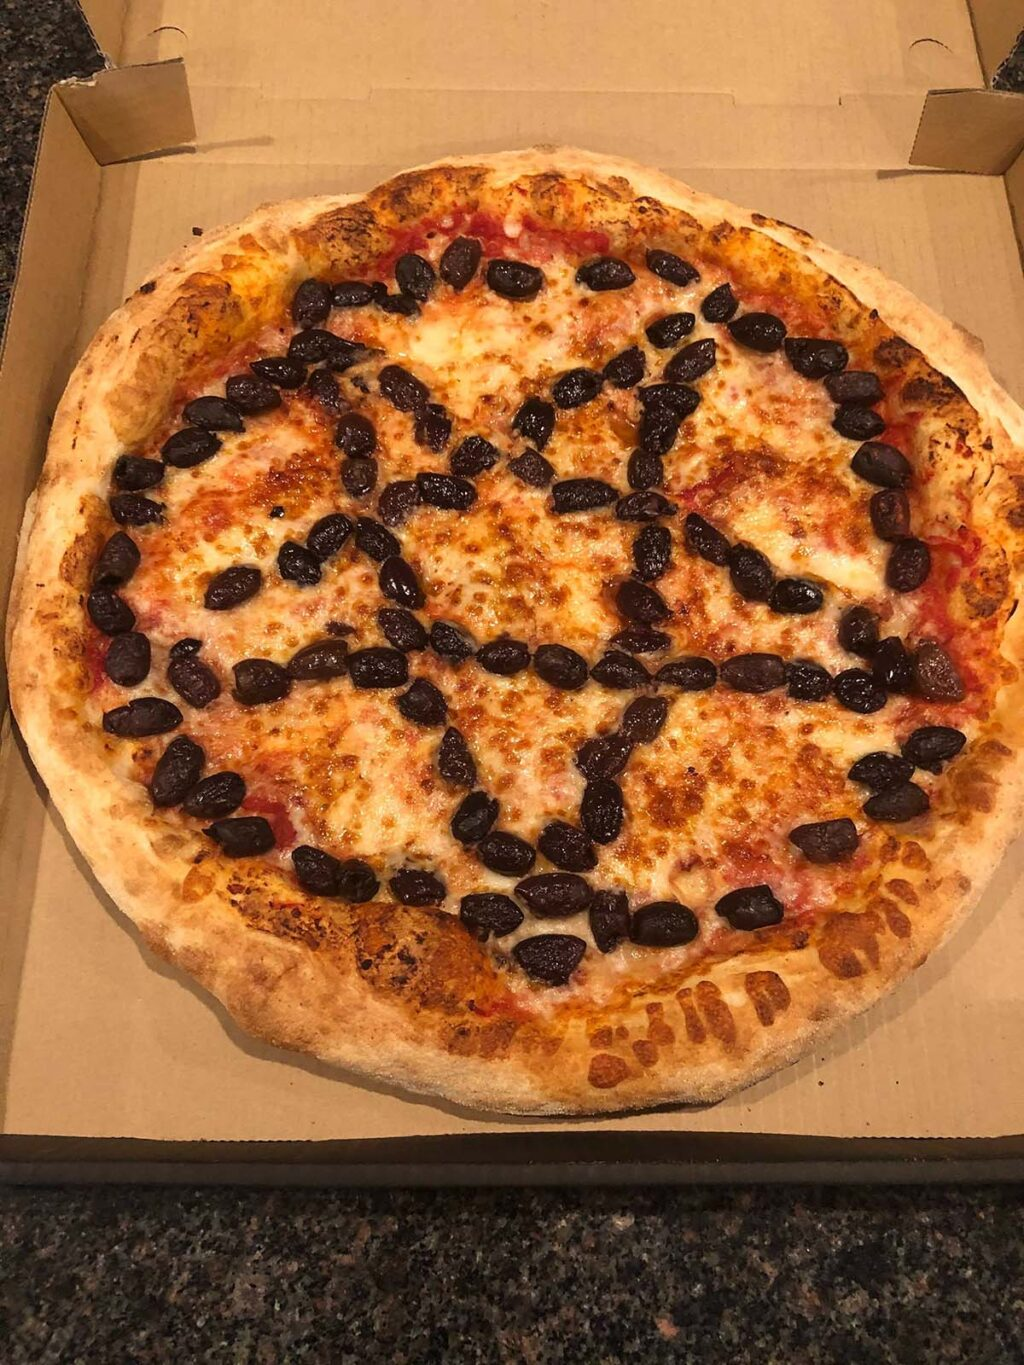 luciferspizza1 1024x1365 - Mysterious Delivery From Lucifer's Damned Good Pizza, Who's The Summoner?